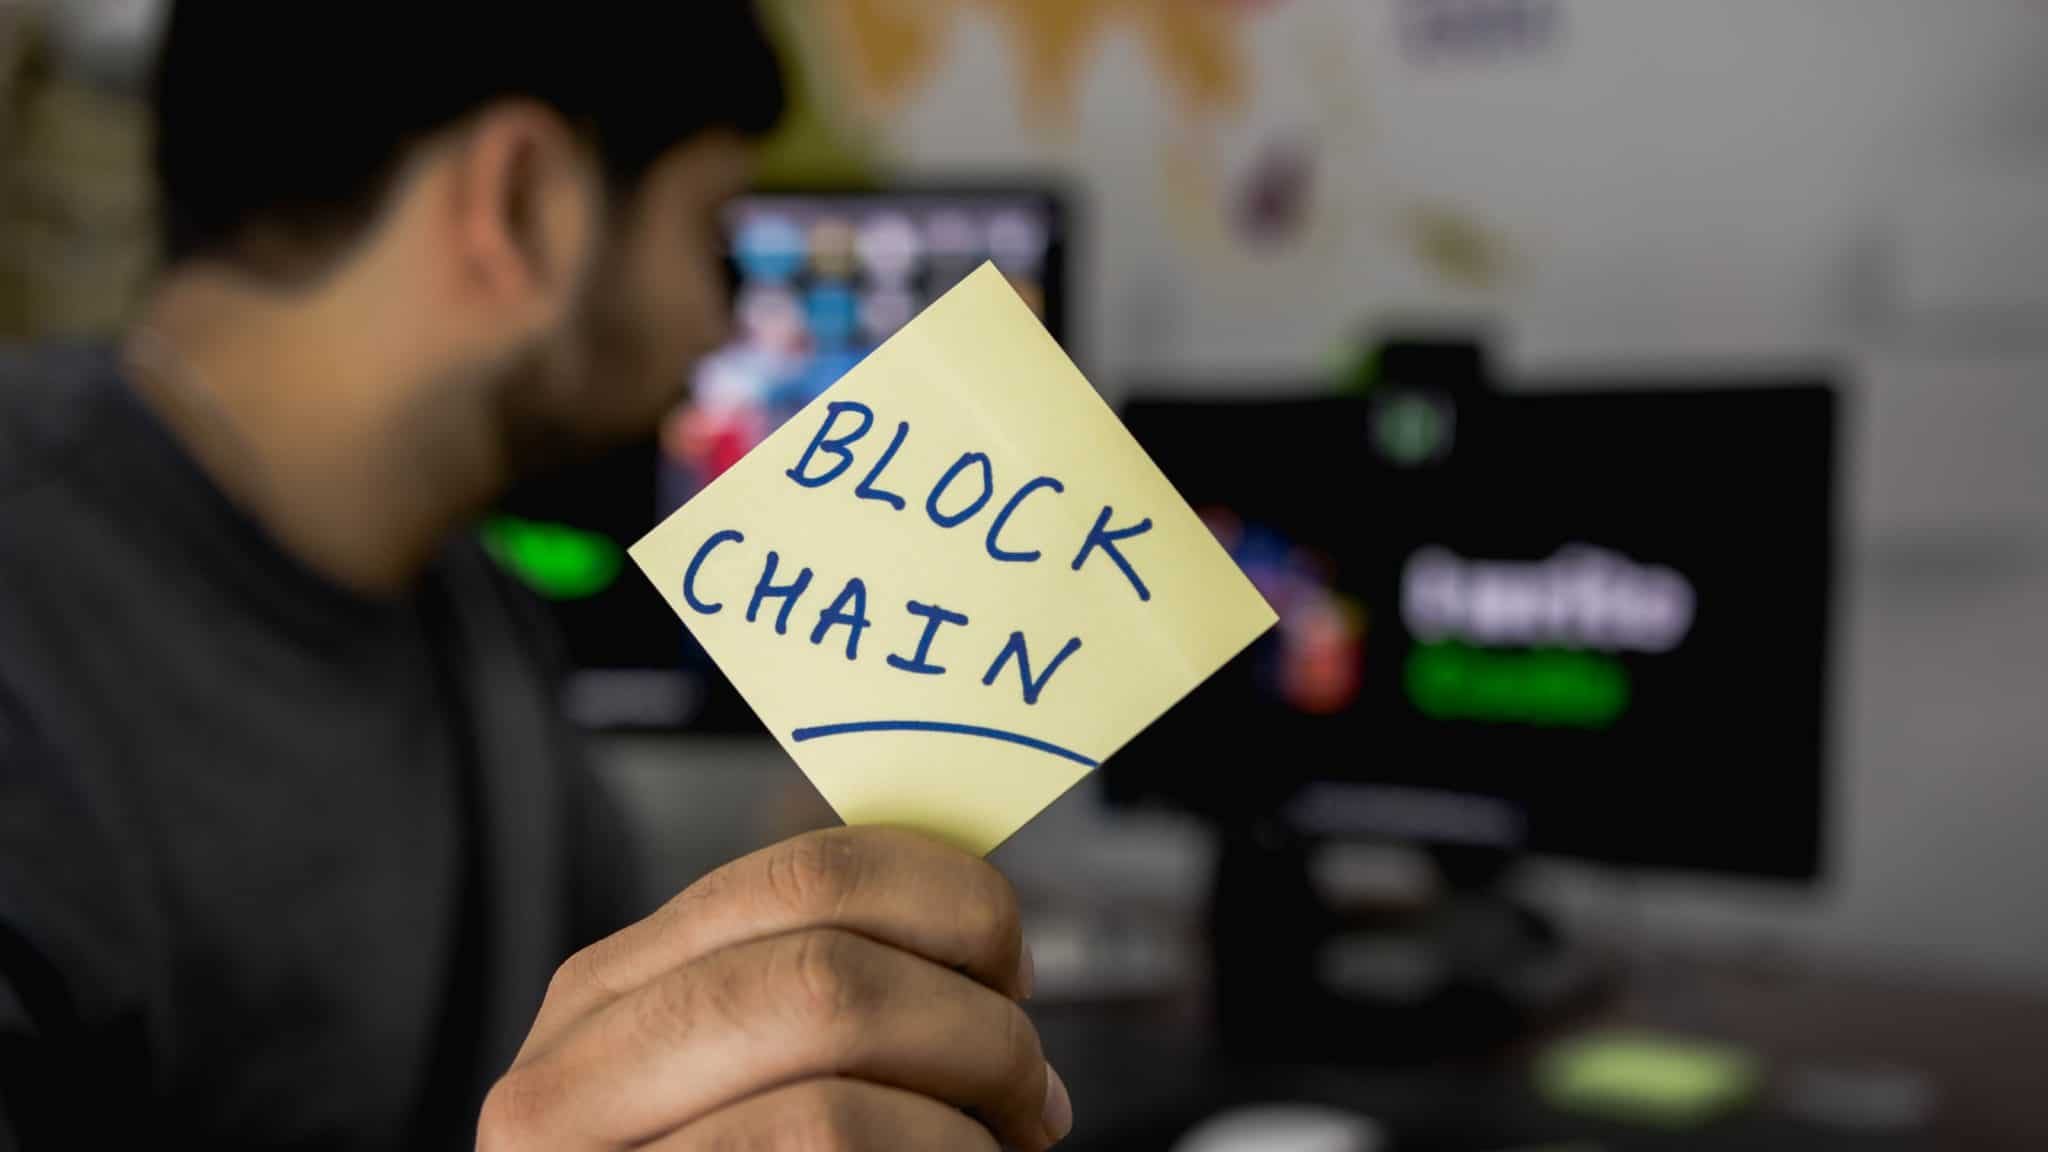 How Blockchain Technology Can Solve Some of Africa's Pertinent Issues